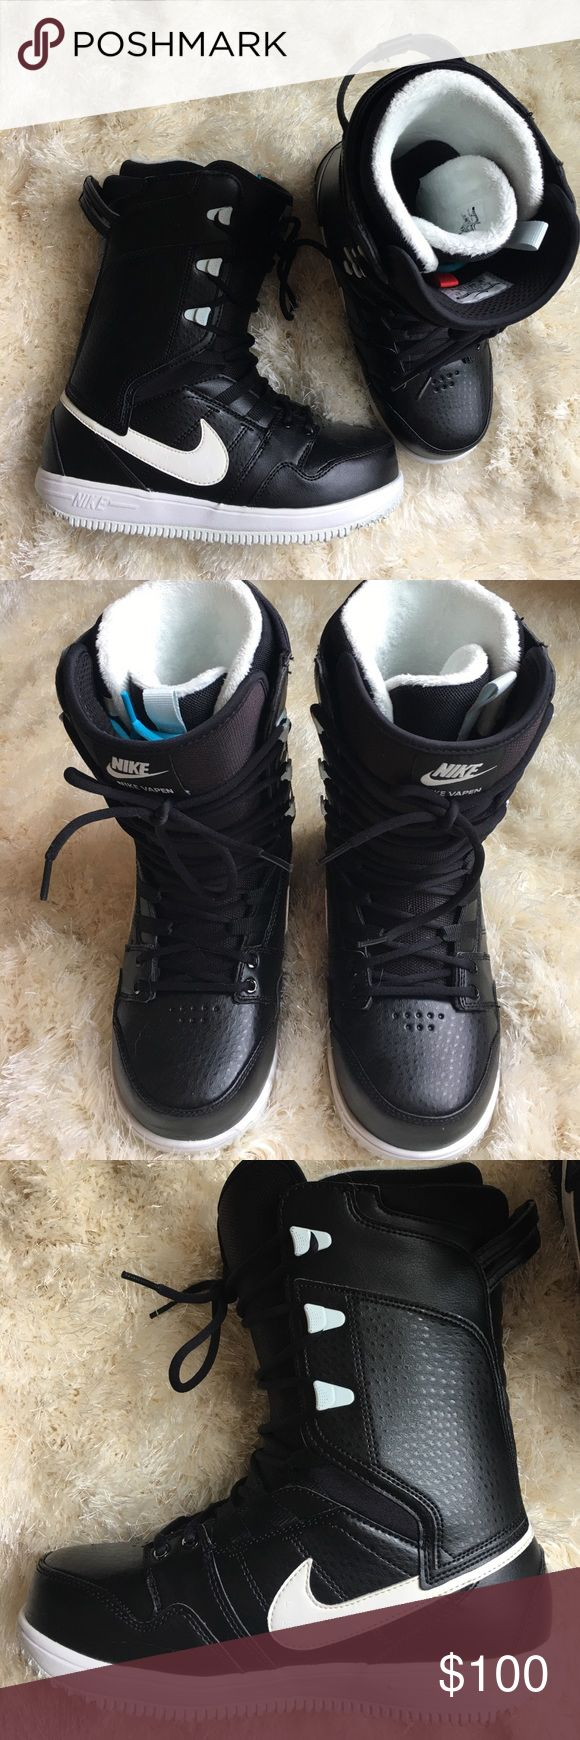 Nike Vapen Women's Snowboard Boots Too big for me unfortunately. Worn a couple times and like new! No marks or any issues with the boots. They are leather exterior with fur lining. No trades. Nike Shoes Winter & Rain Boots